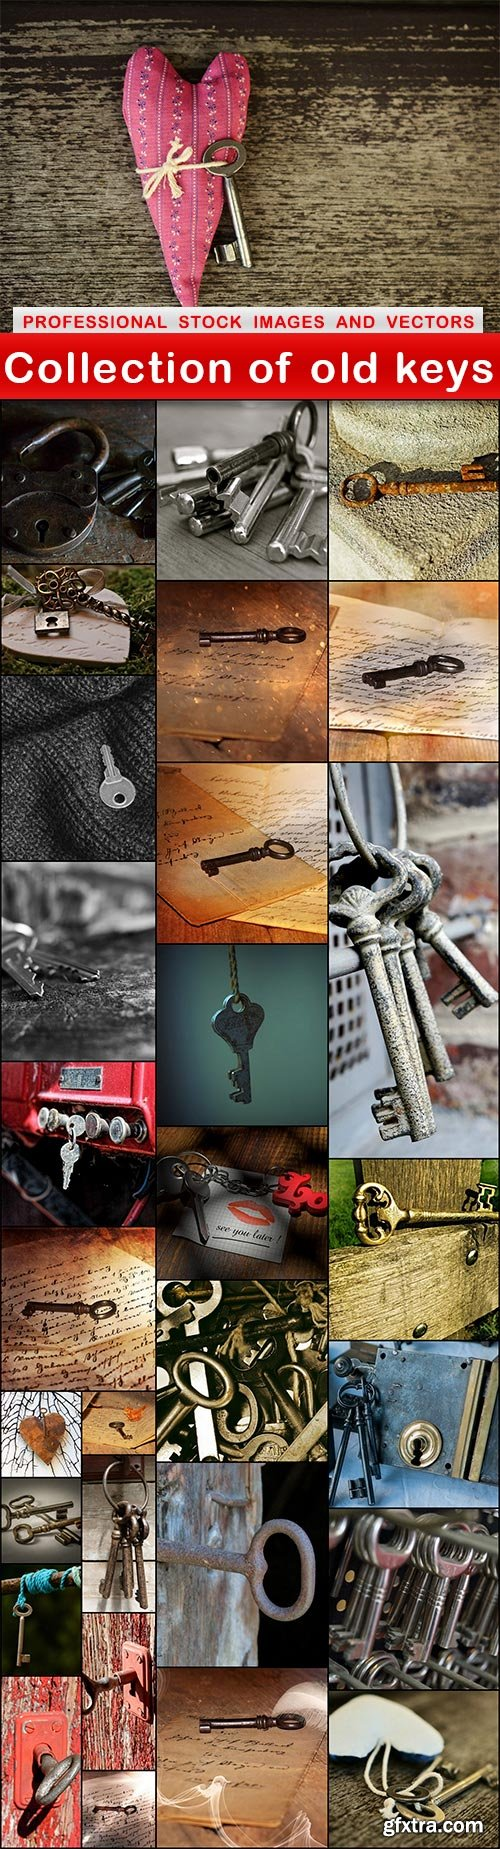 Collection of old keys - 30 UHQ JPEG